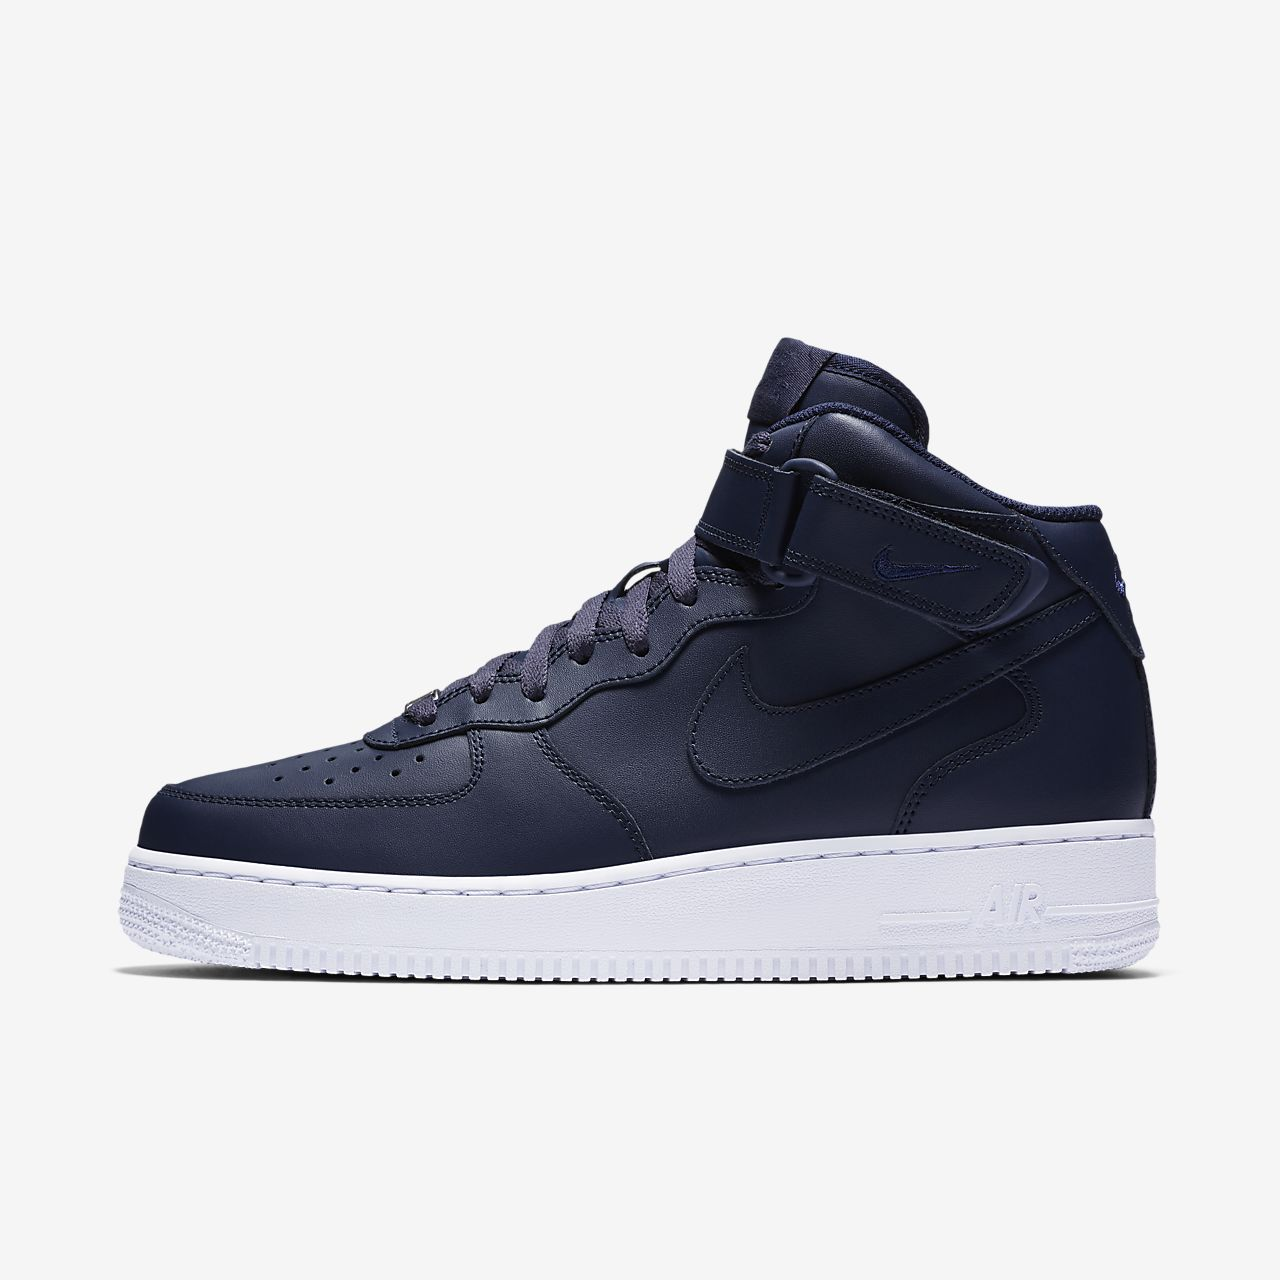 1 Force Chaussure Nike Homme Mid '07 Pour Air oeWxBdrC